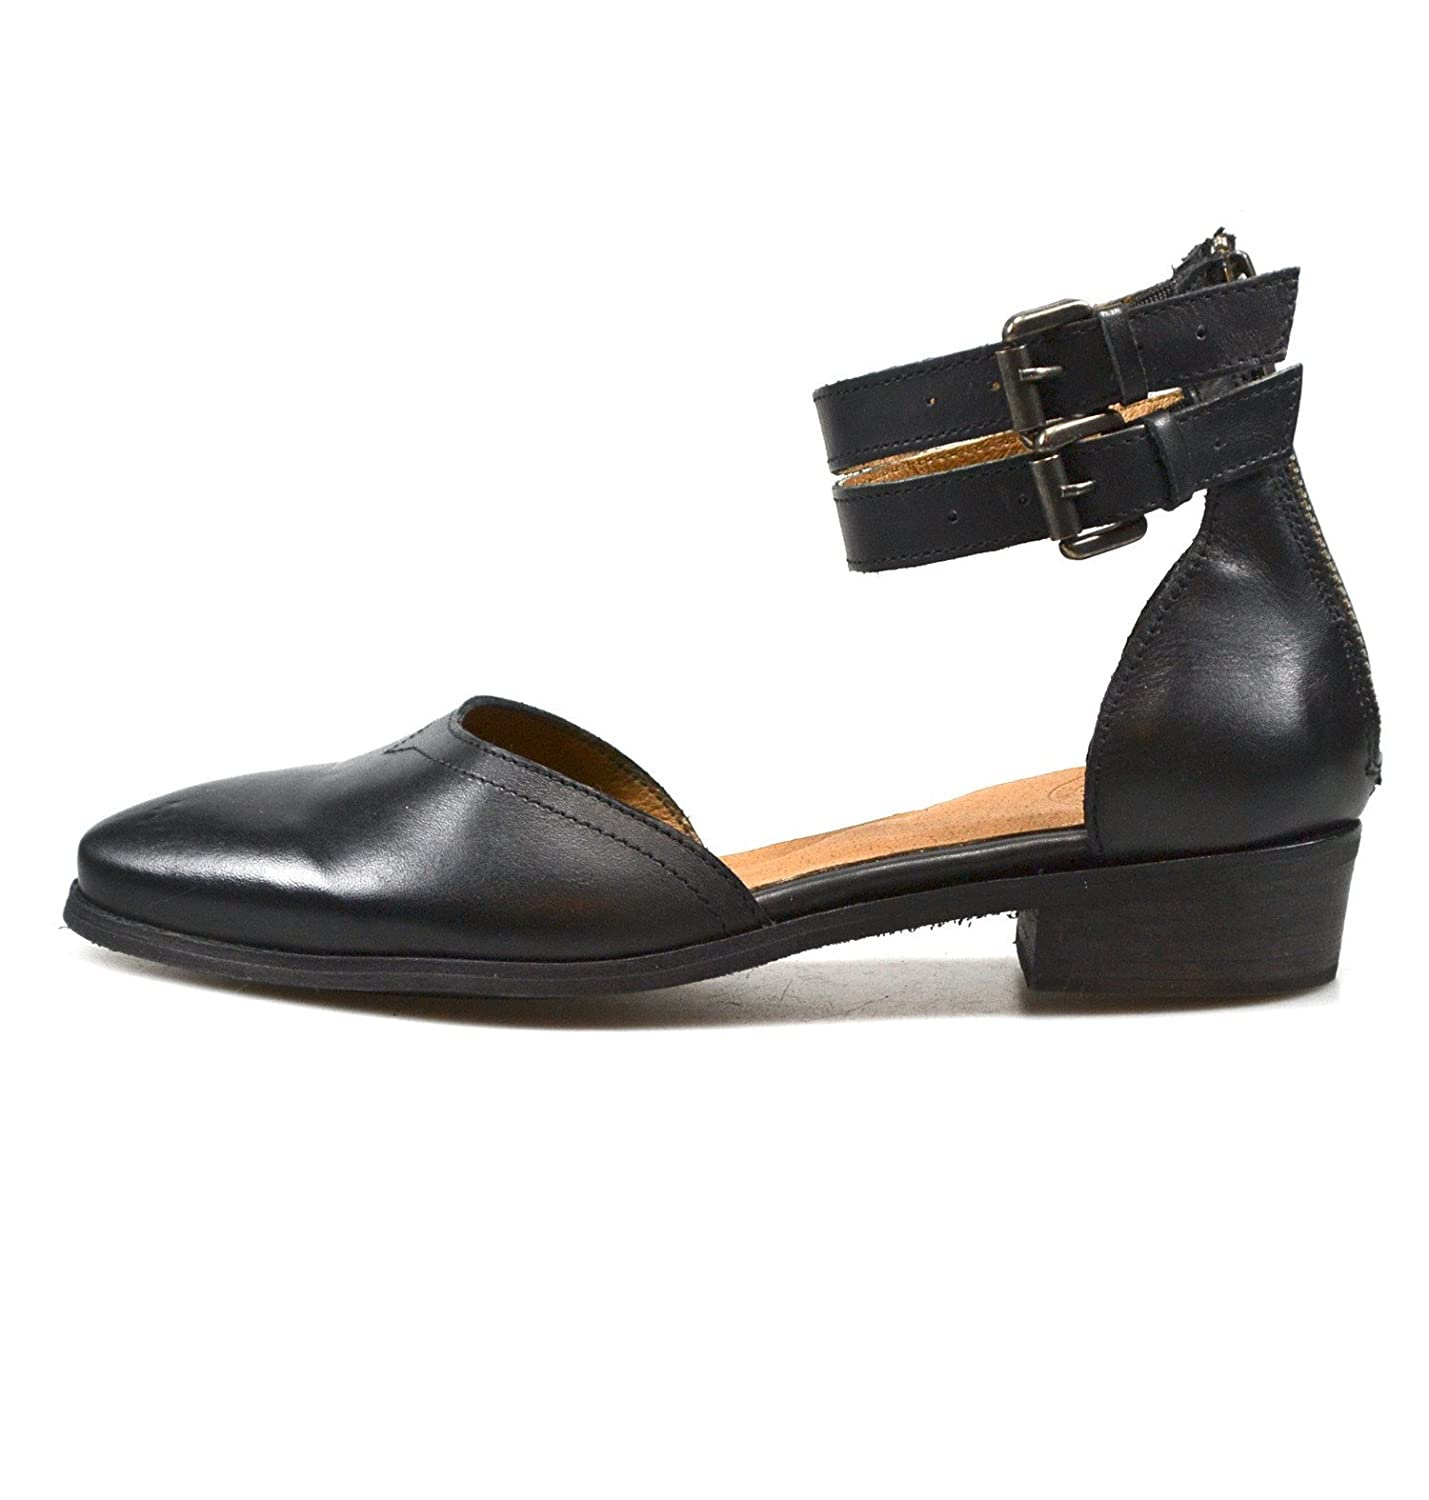 Men/Women Sutro Footwear Bruce Black are B079GH4JWY Flats New varieties are Black launched Bright colors Personalization trend 0de023